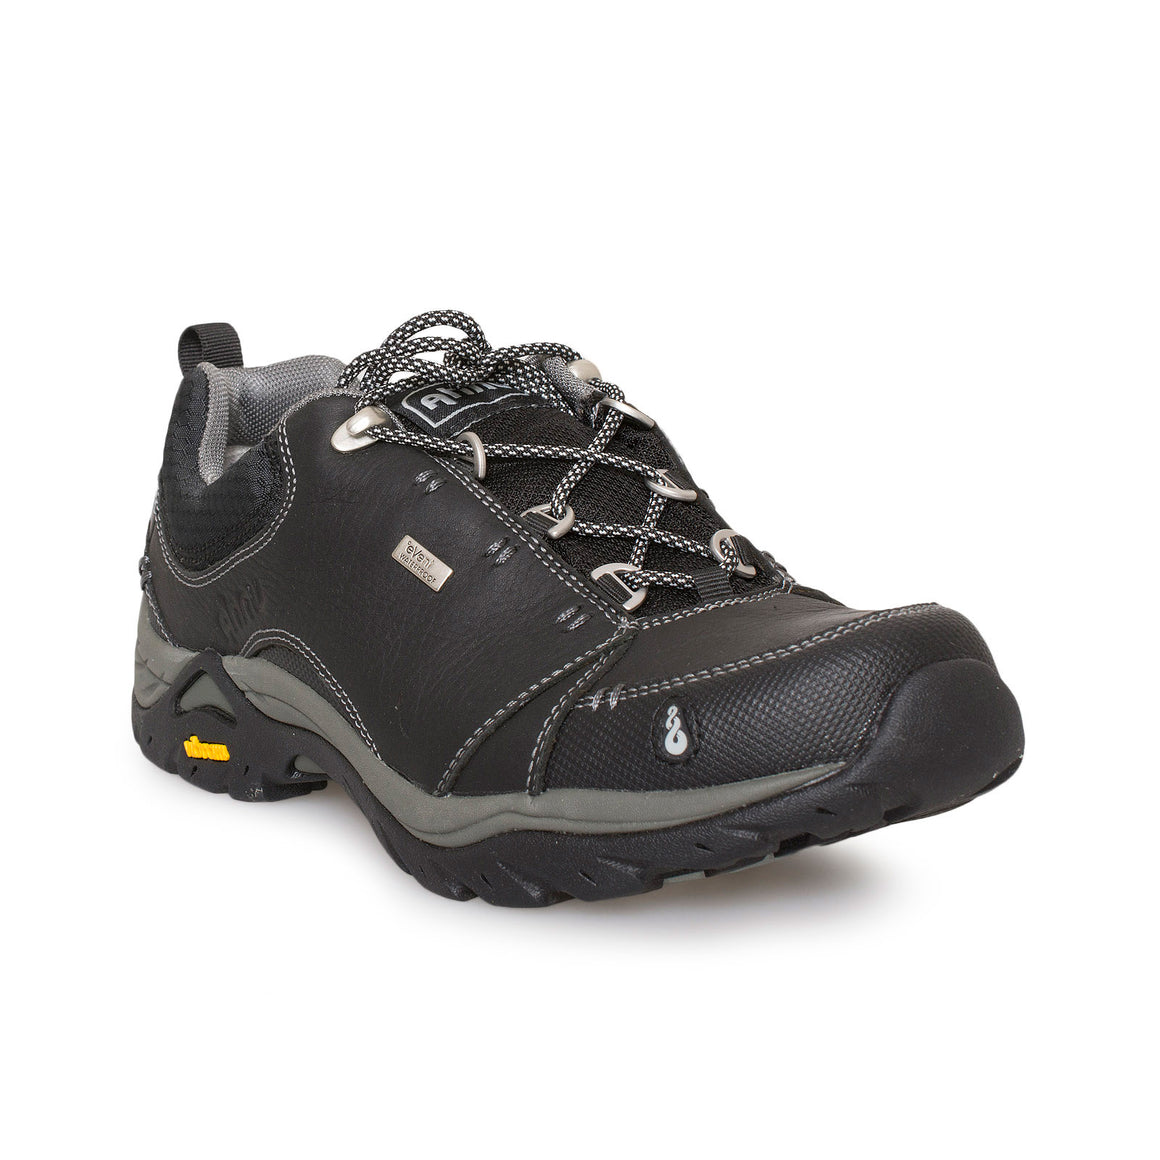 Ahnu Montara II WP New Black Boots